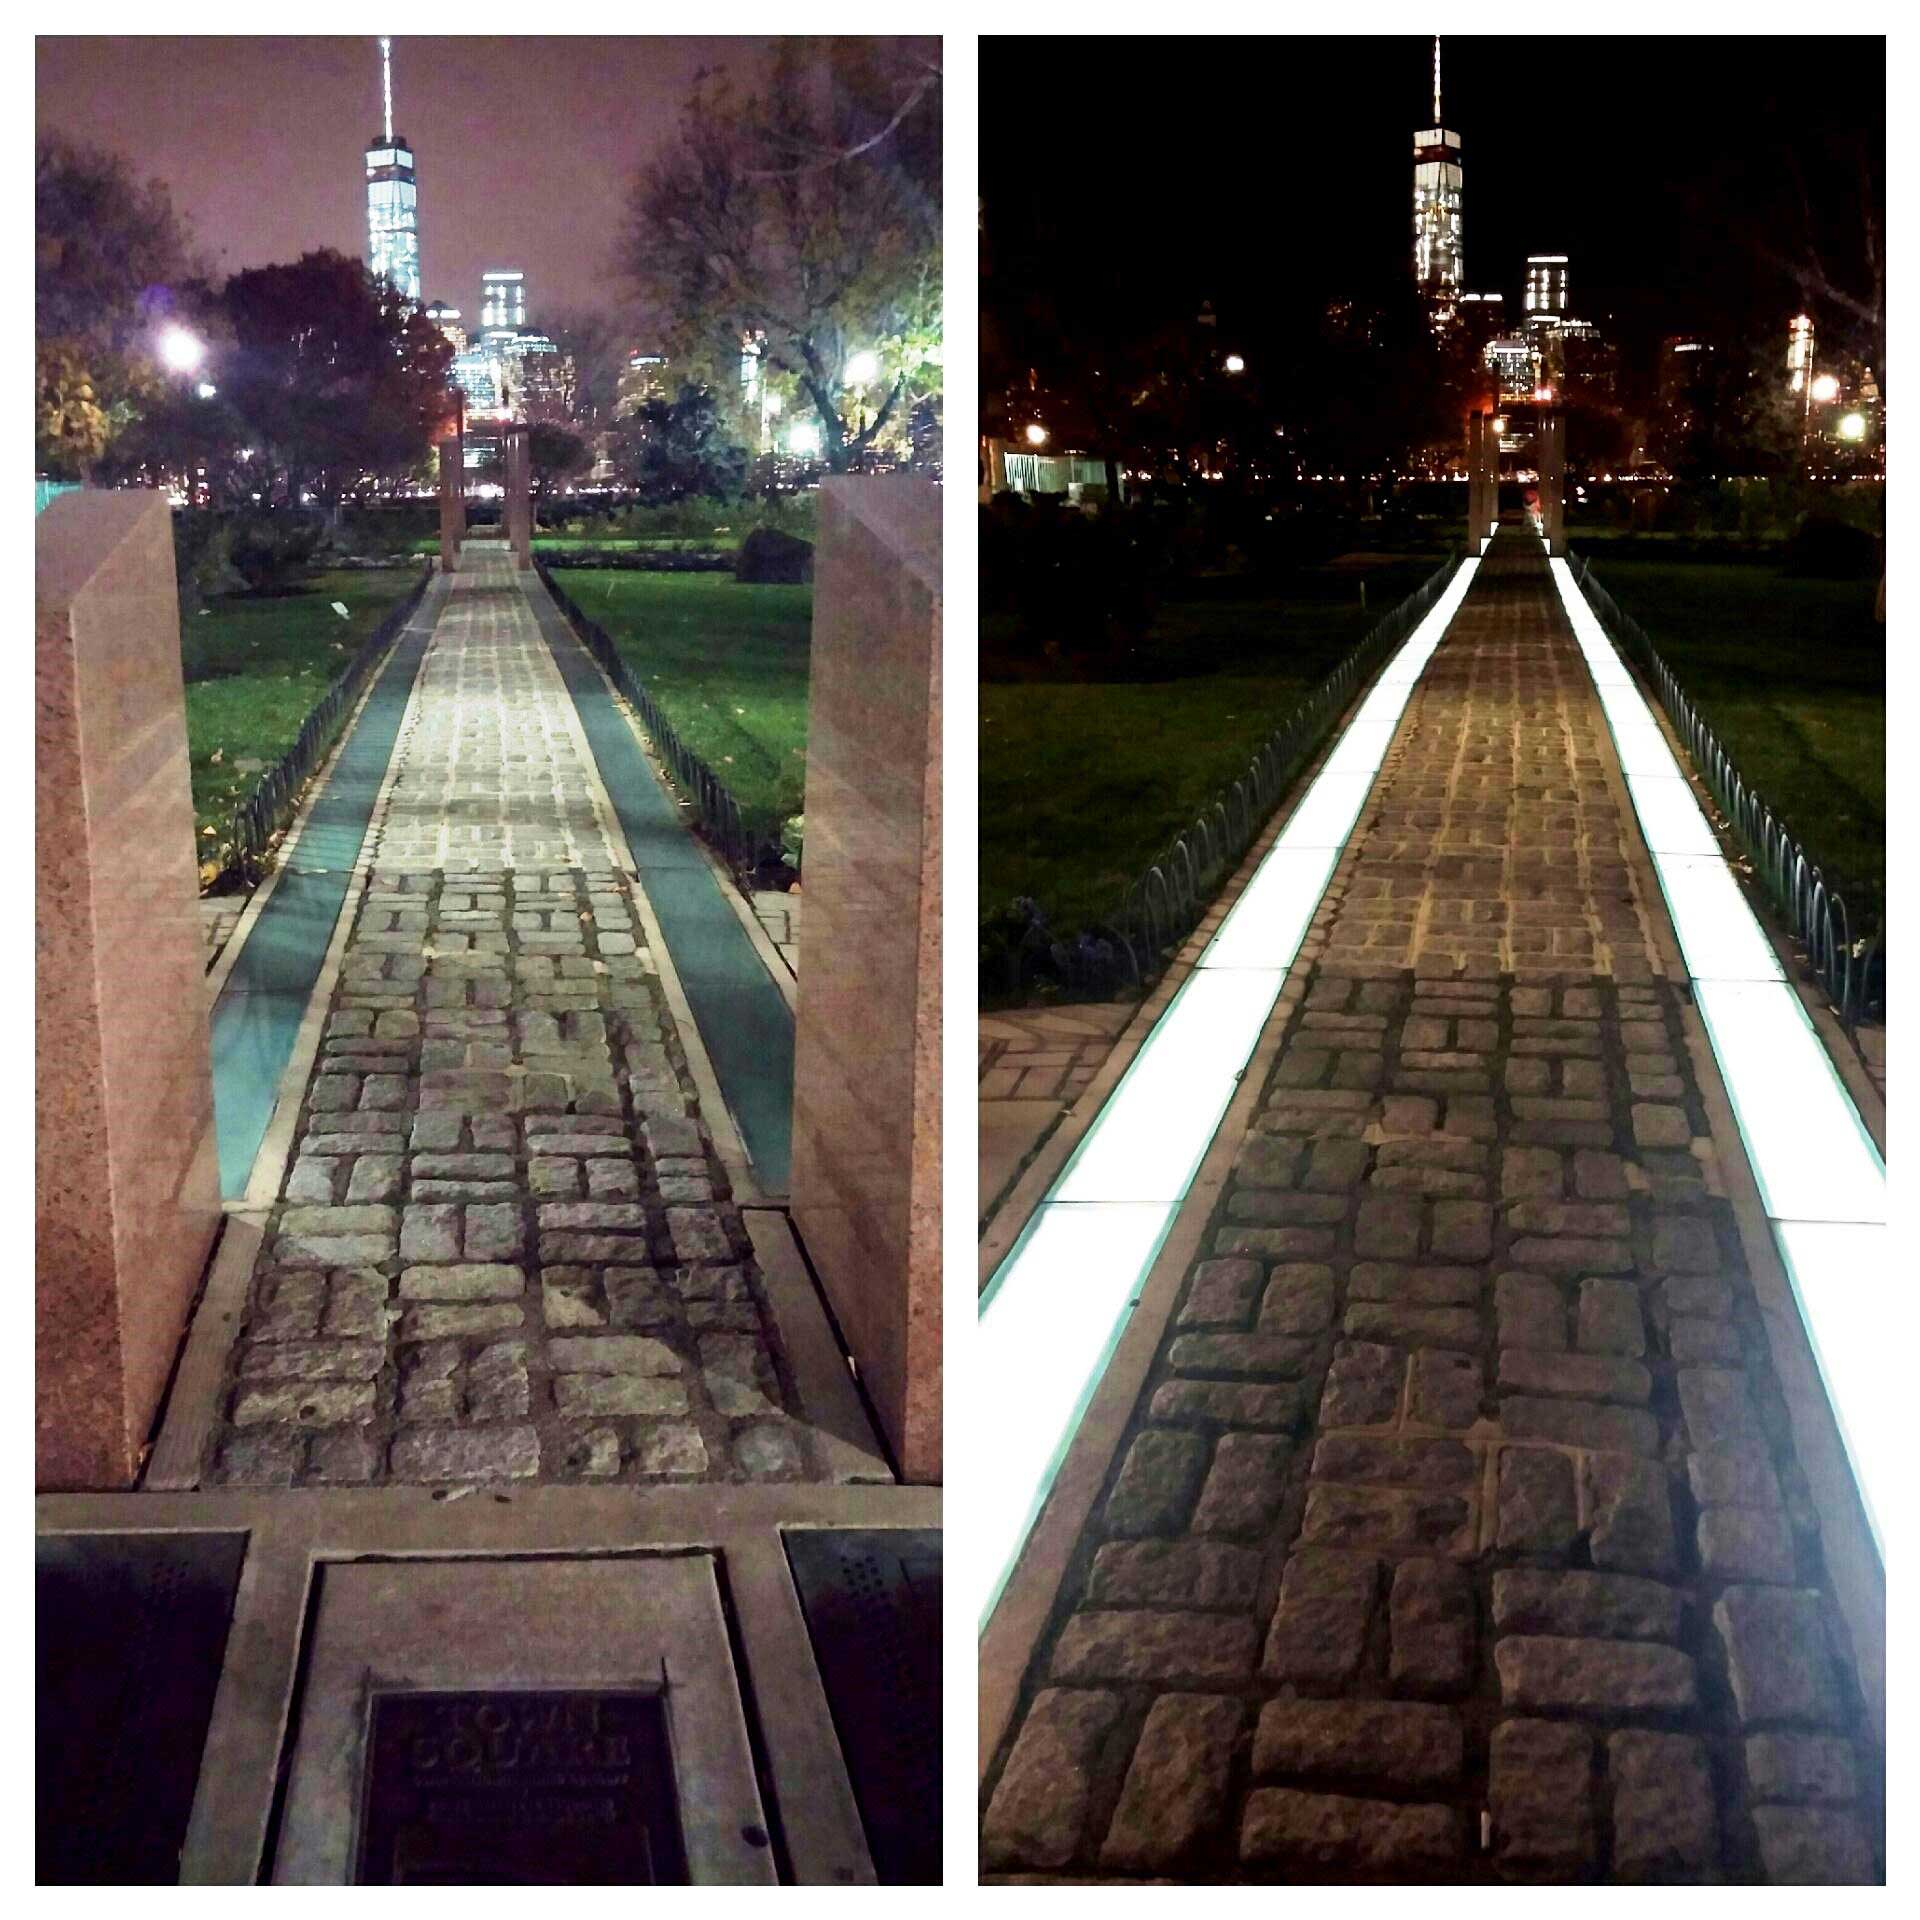 architectural memorial lighting in park